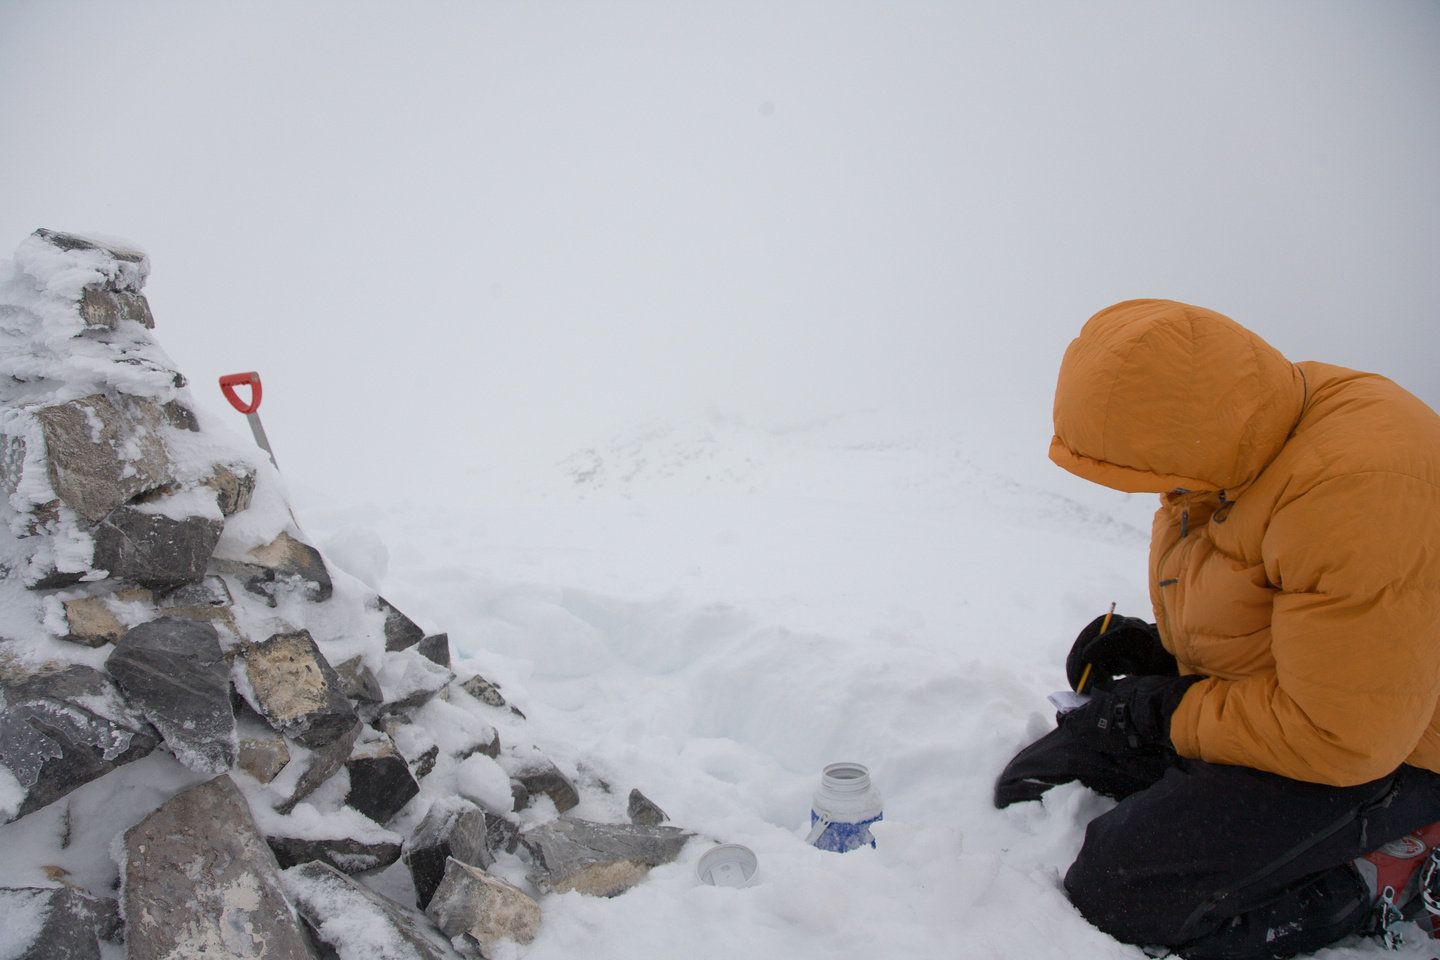 Jason struggles against the cold as he scribbles something in the summit register.